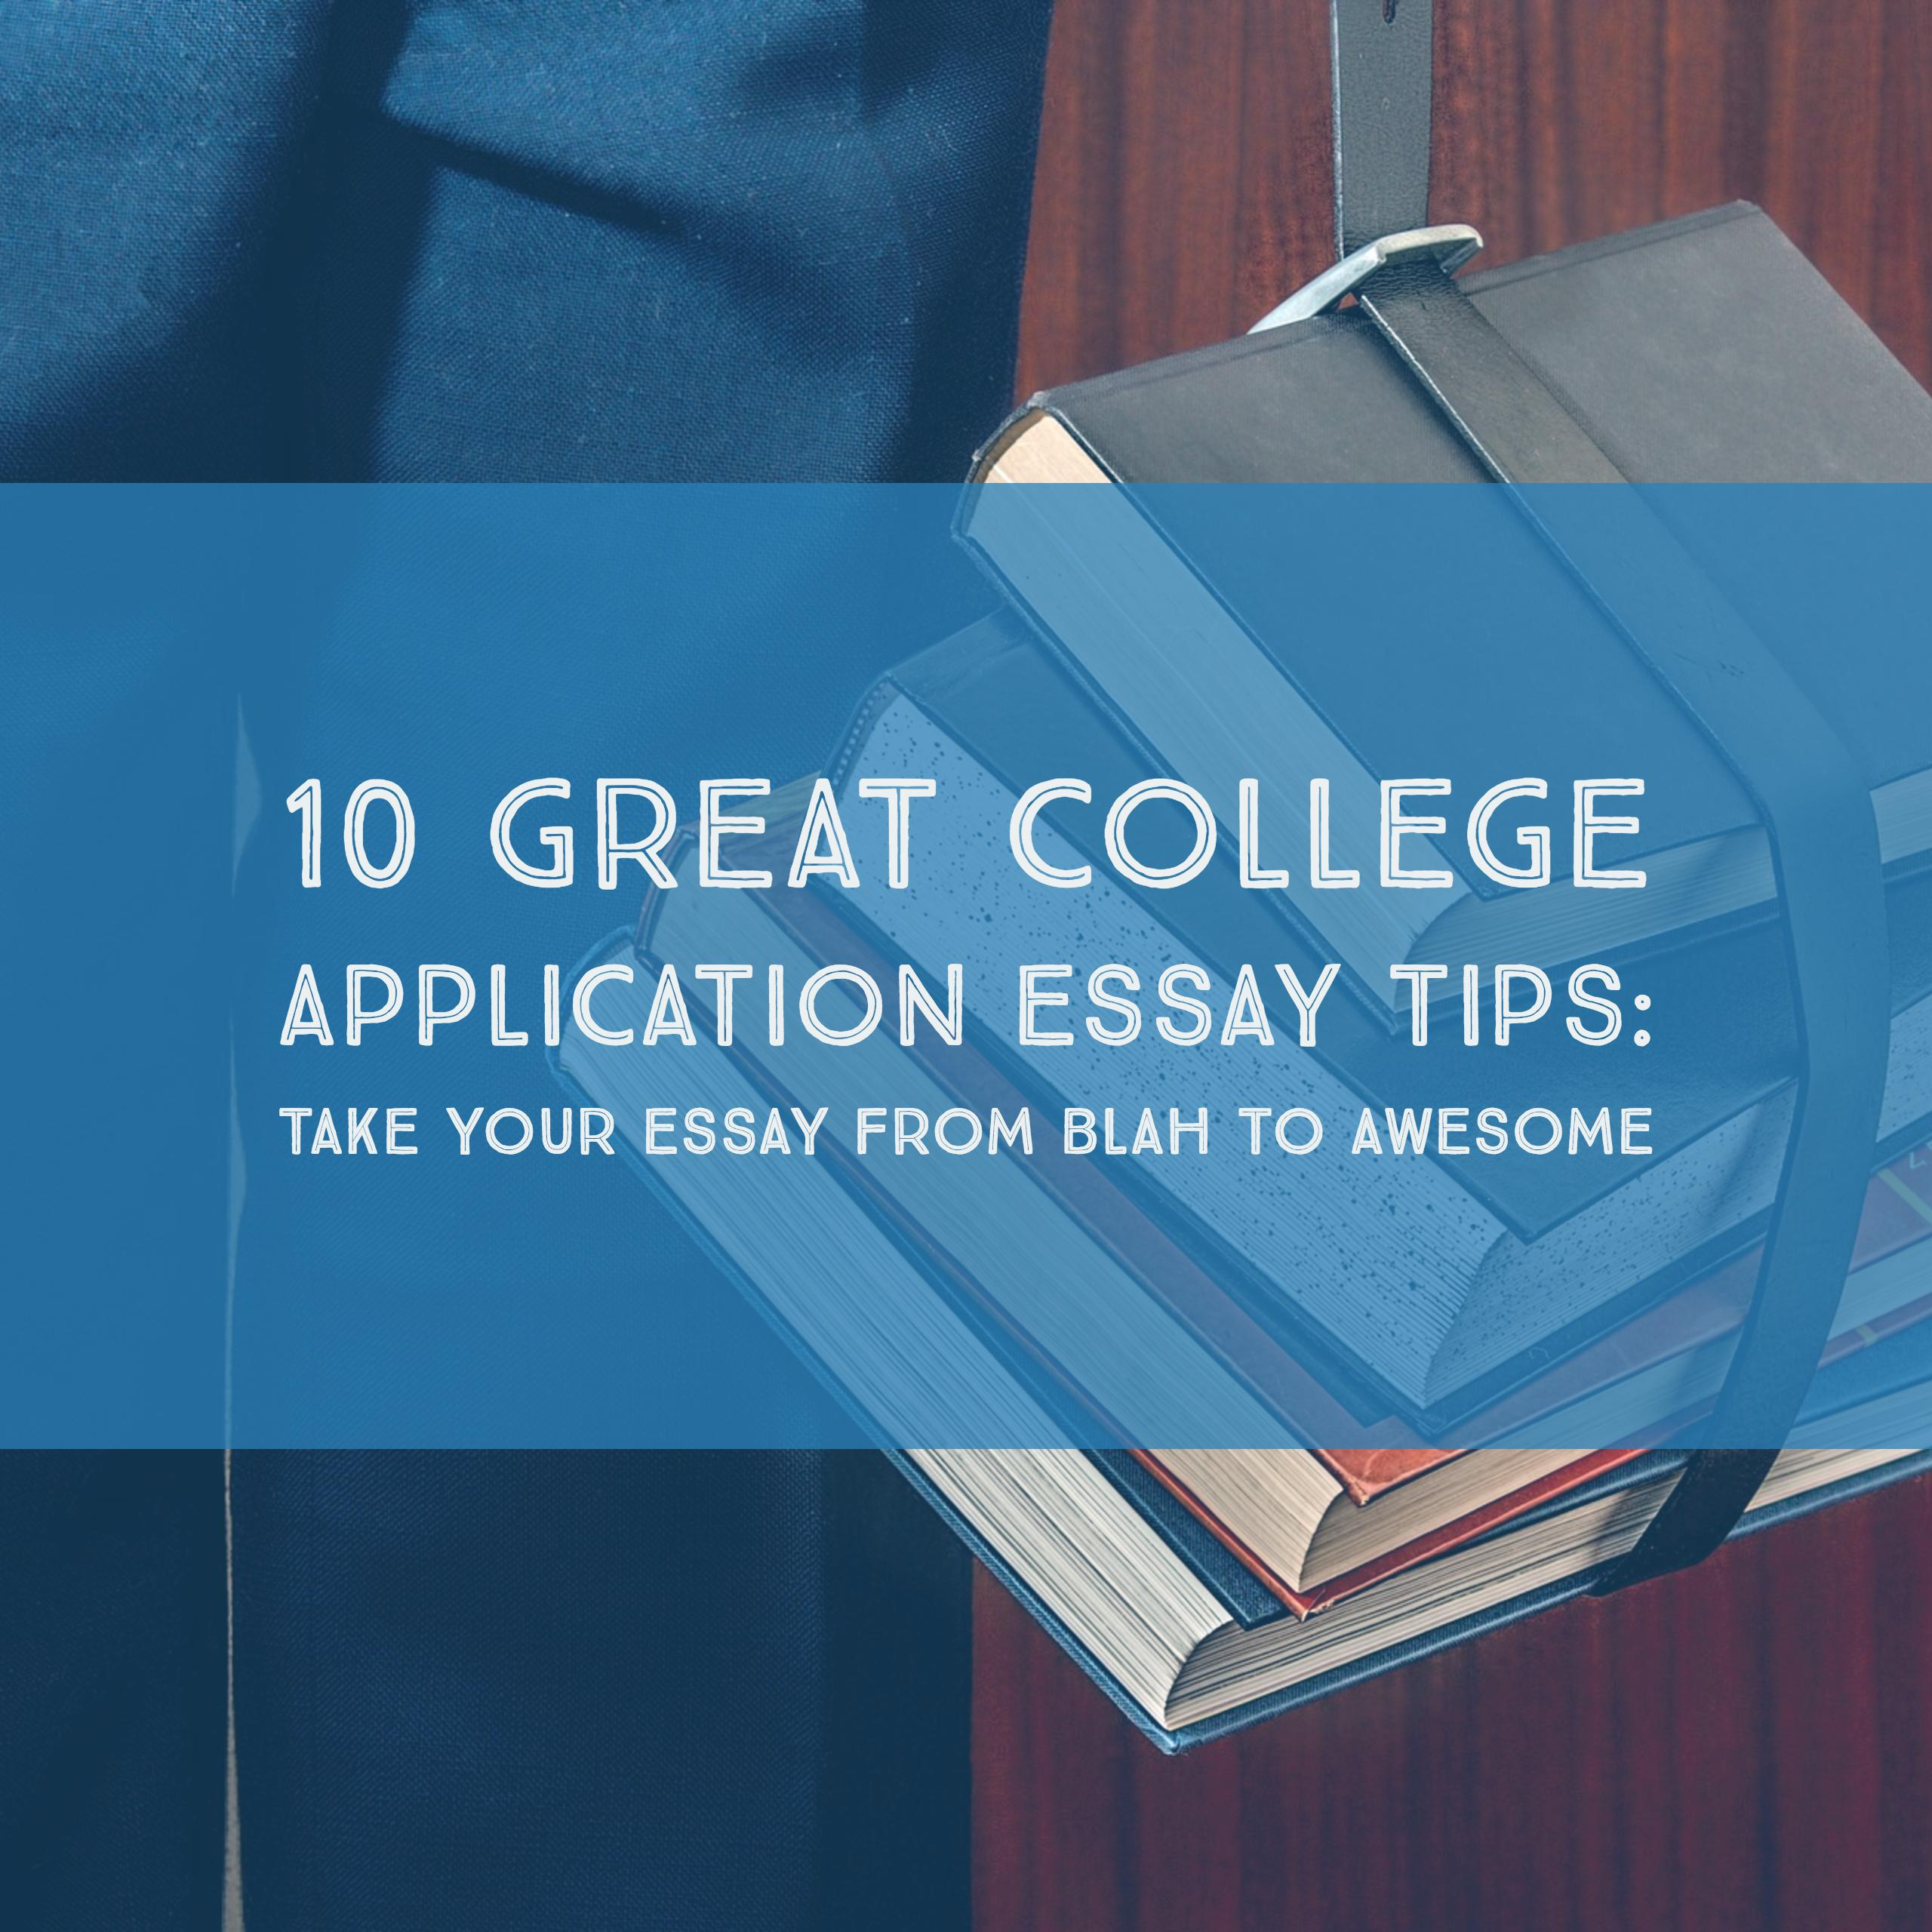 great college essays application College essay tip #9 mark montgomery, former associate dean at the university of denver, admissions counselor for fort lewis college, founder of great college advice, and professor of international affairs at the hong kong university of science and technologykansas keep the story focused on a discrete moment in time.